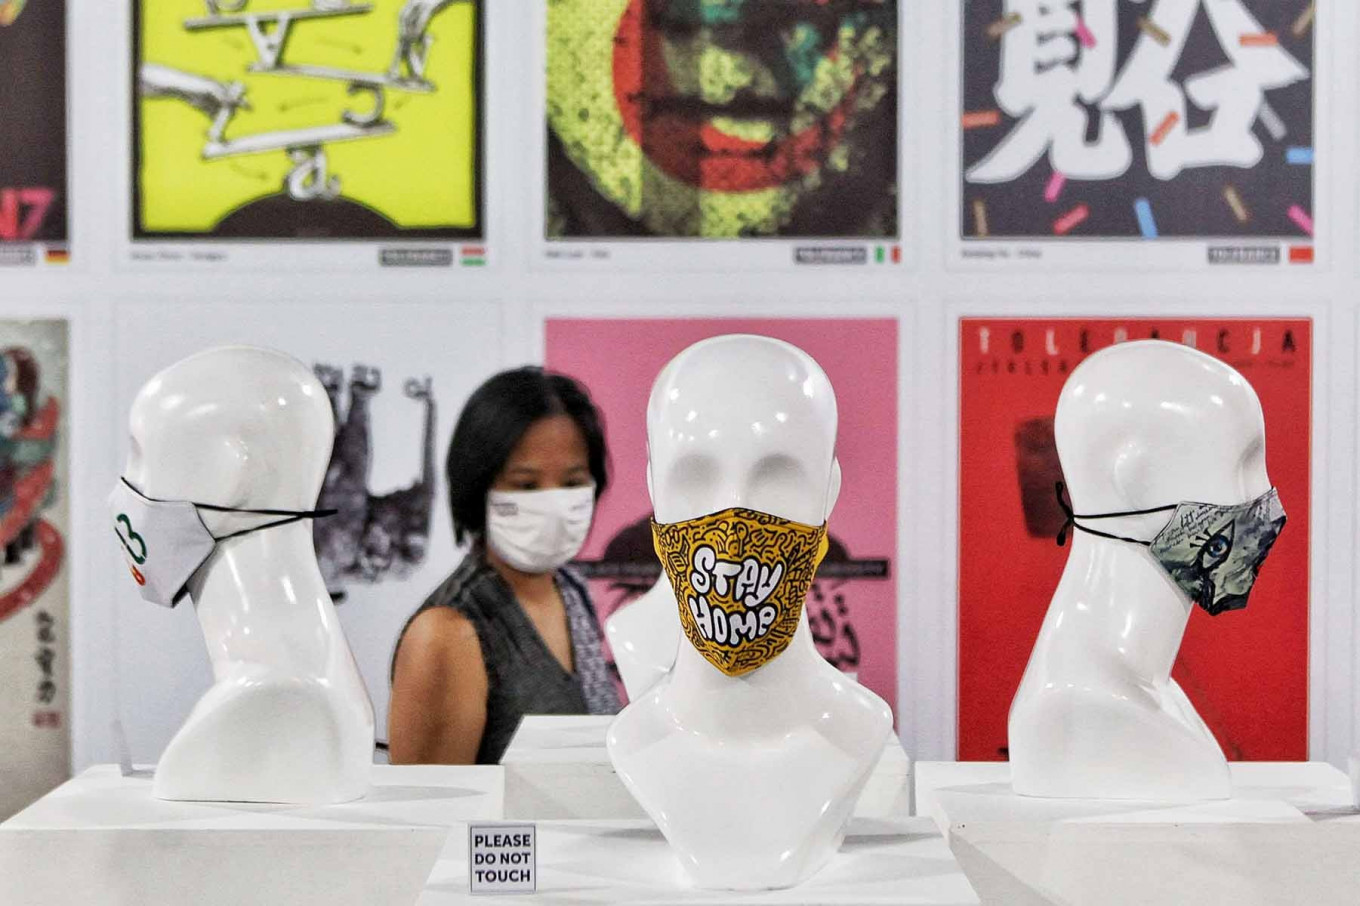 A visitor looks at posters and face masks displayed at an exhibition at Summarecon Mall Serpong in Tangerang, Banten. Coinciding with National Heroes Day on Nov. 10, the exhibition aims to spread the message that anyone can be a hero by wearing a mask and adhering to health protocols. JP/Seto Wardhana